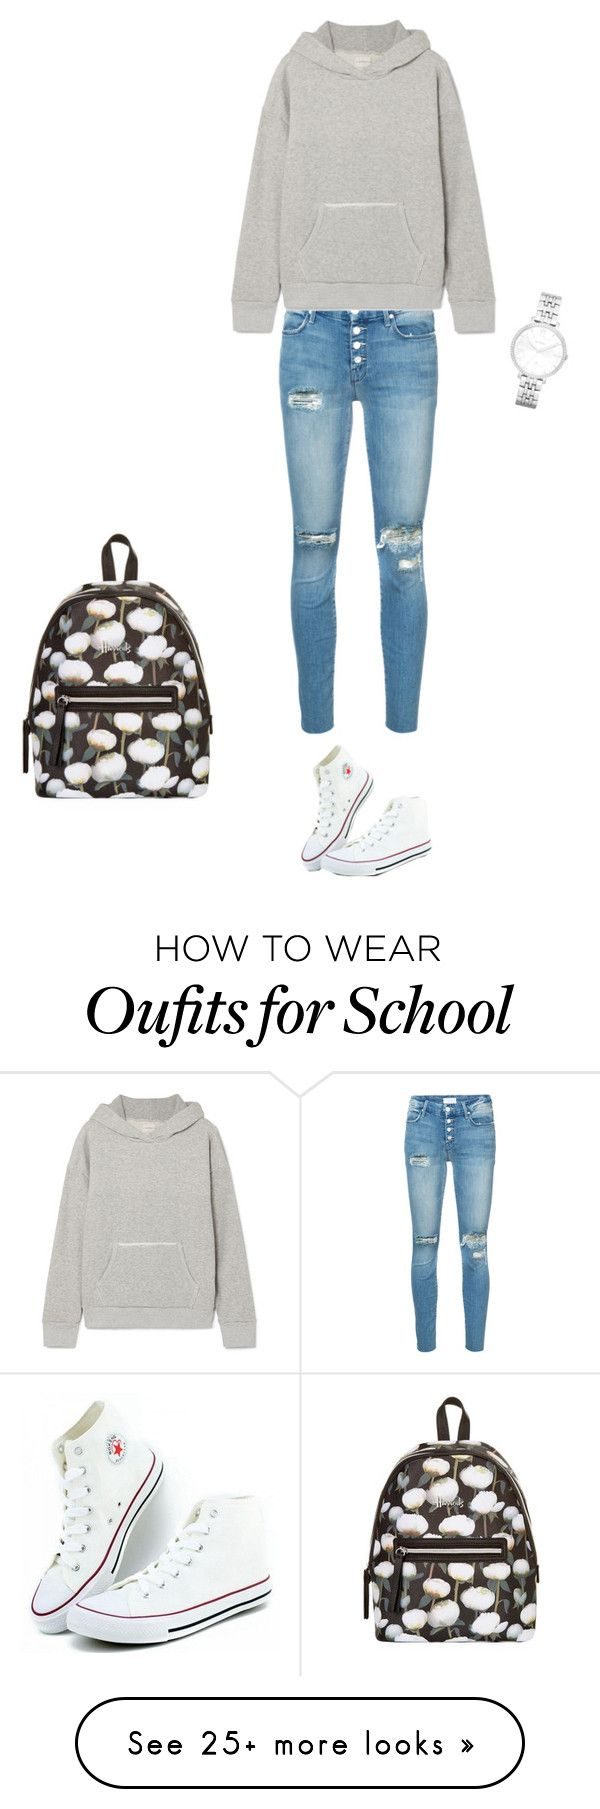 """Lazy school day"" by umanamelb on Polyvore featuring FOSSIL, Mother, Simon Miller and Harrods"